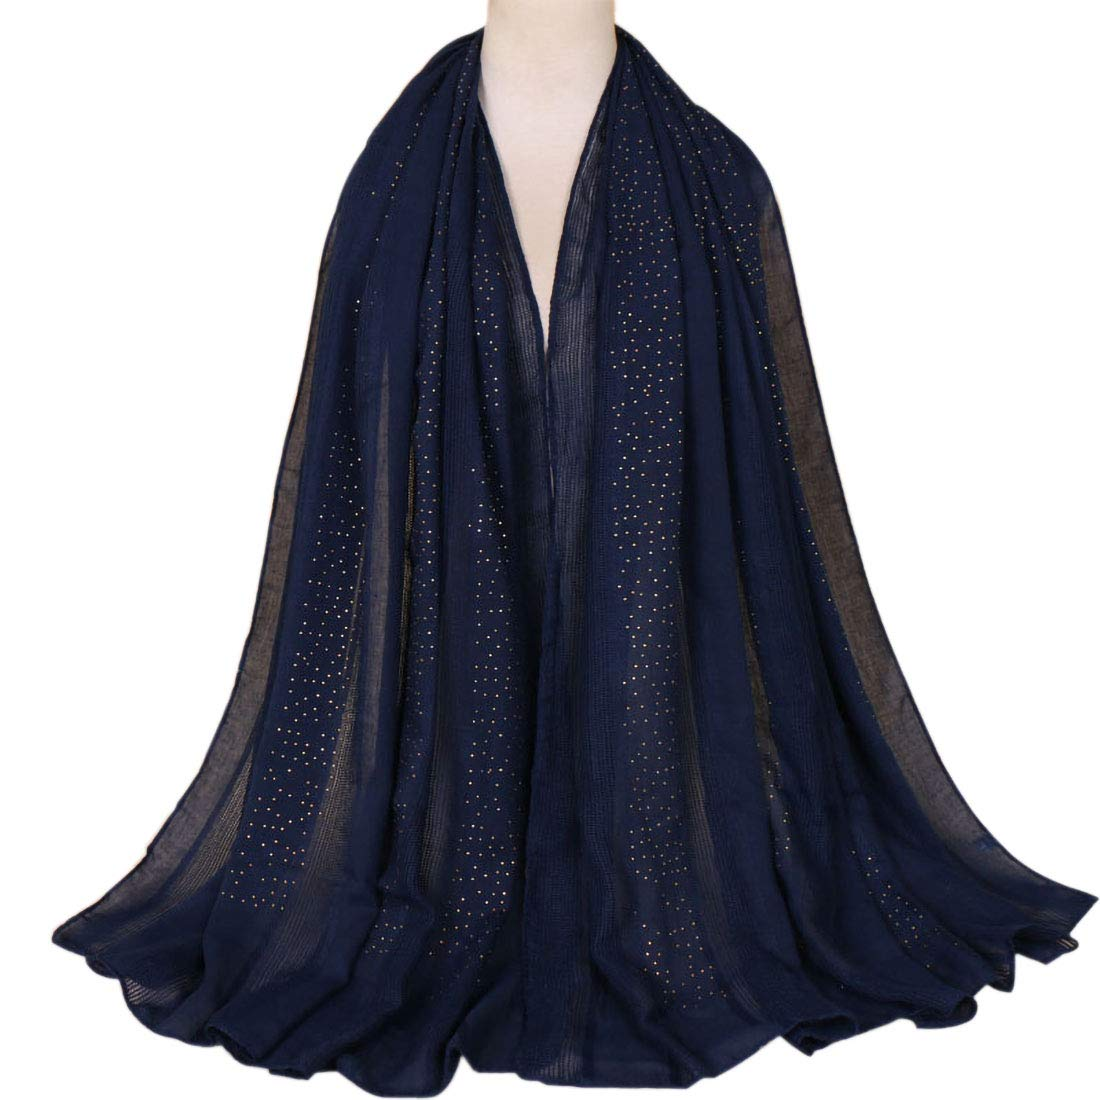 Women's Winter Warm Scarfs Long Soft Cotton Fashion Scarves Lightweight Shawls and Wraps for Evening Wedding Scarf Solid Colors Navy Blue